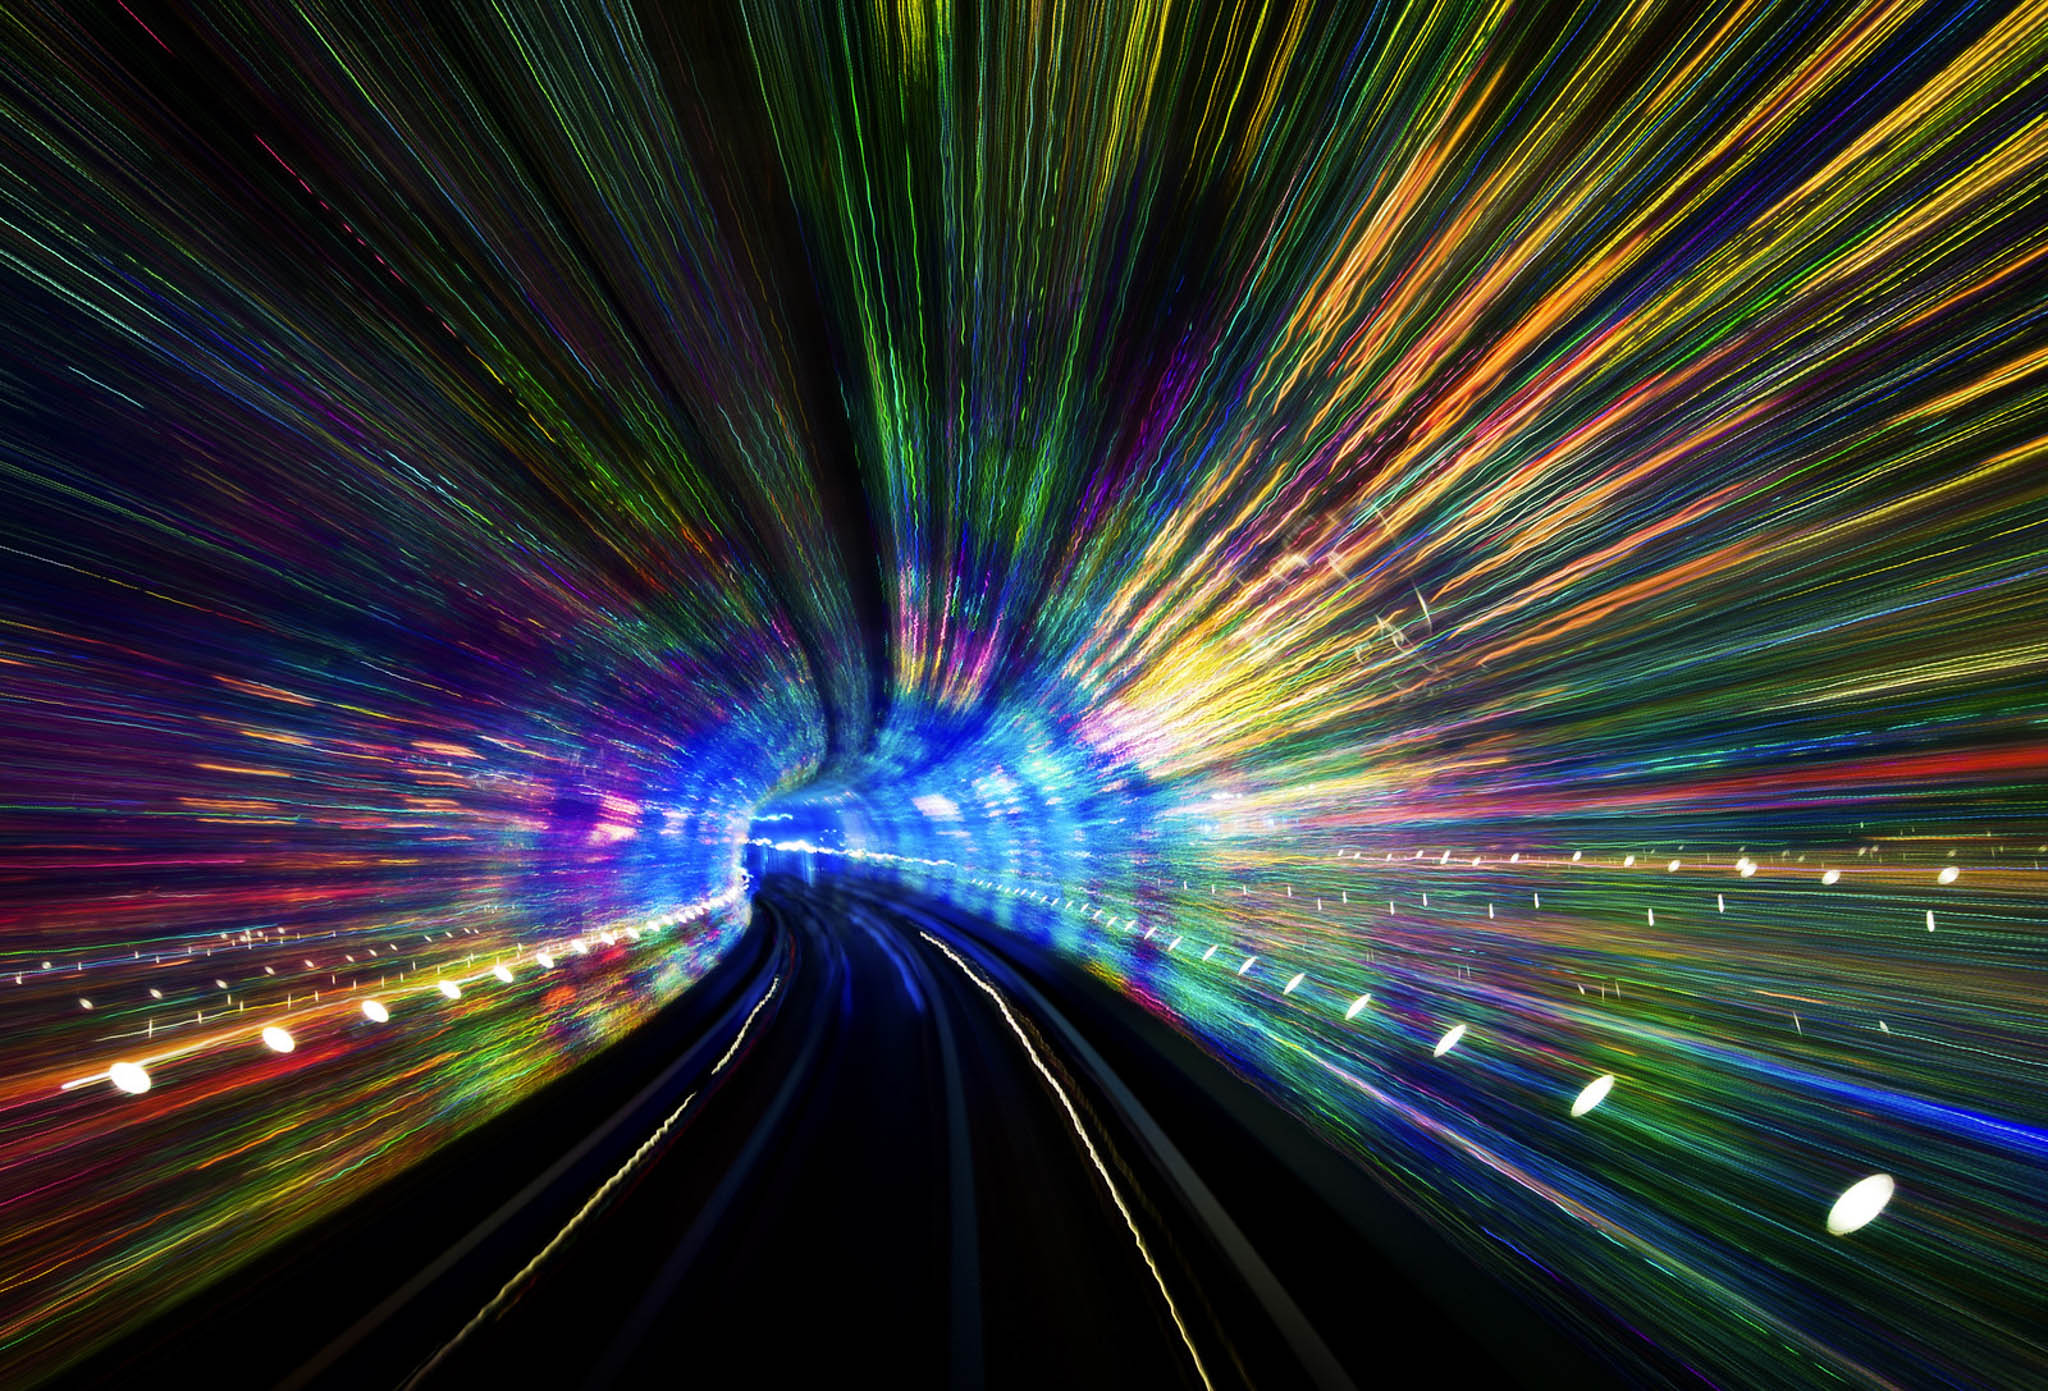 A long exposure in a tunnel filled with LED Lights